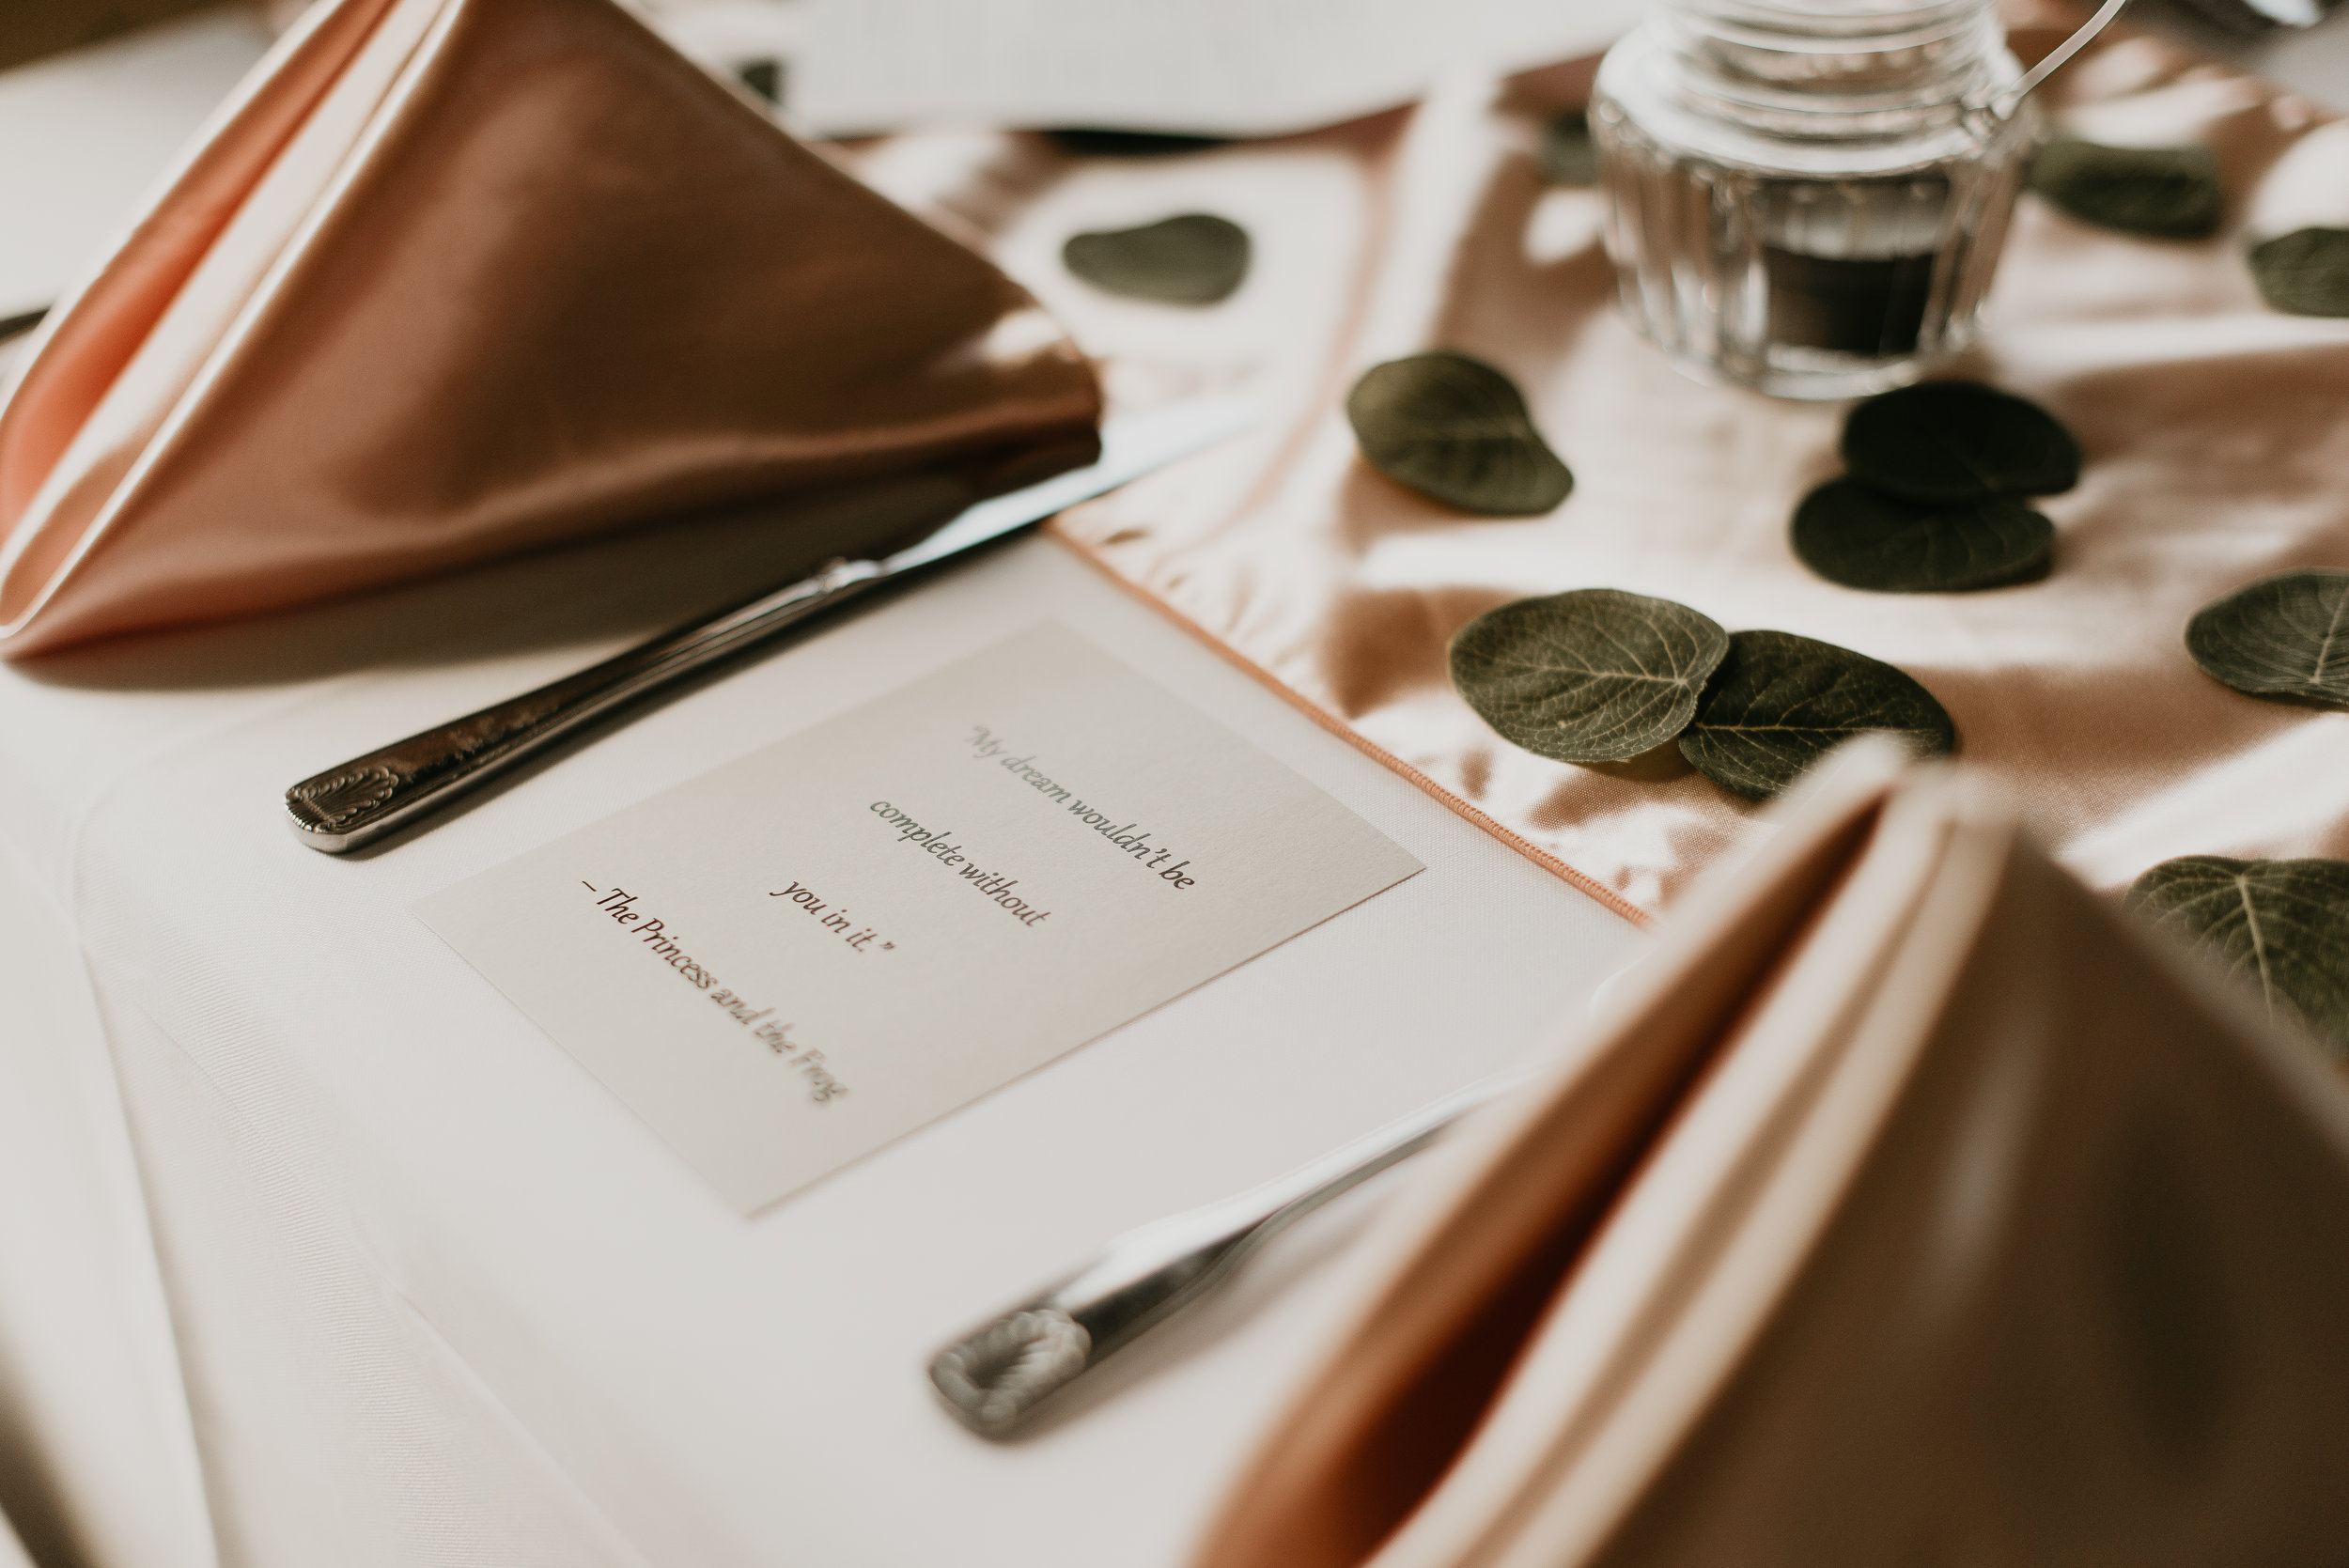 Reception table place setting at MetroWest Golf Club in Orlando, FL